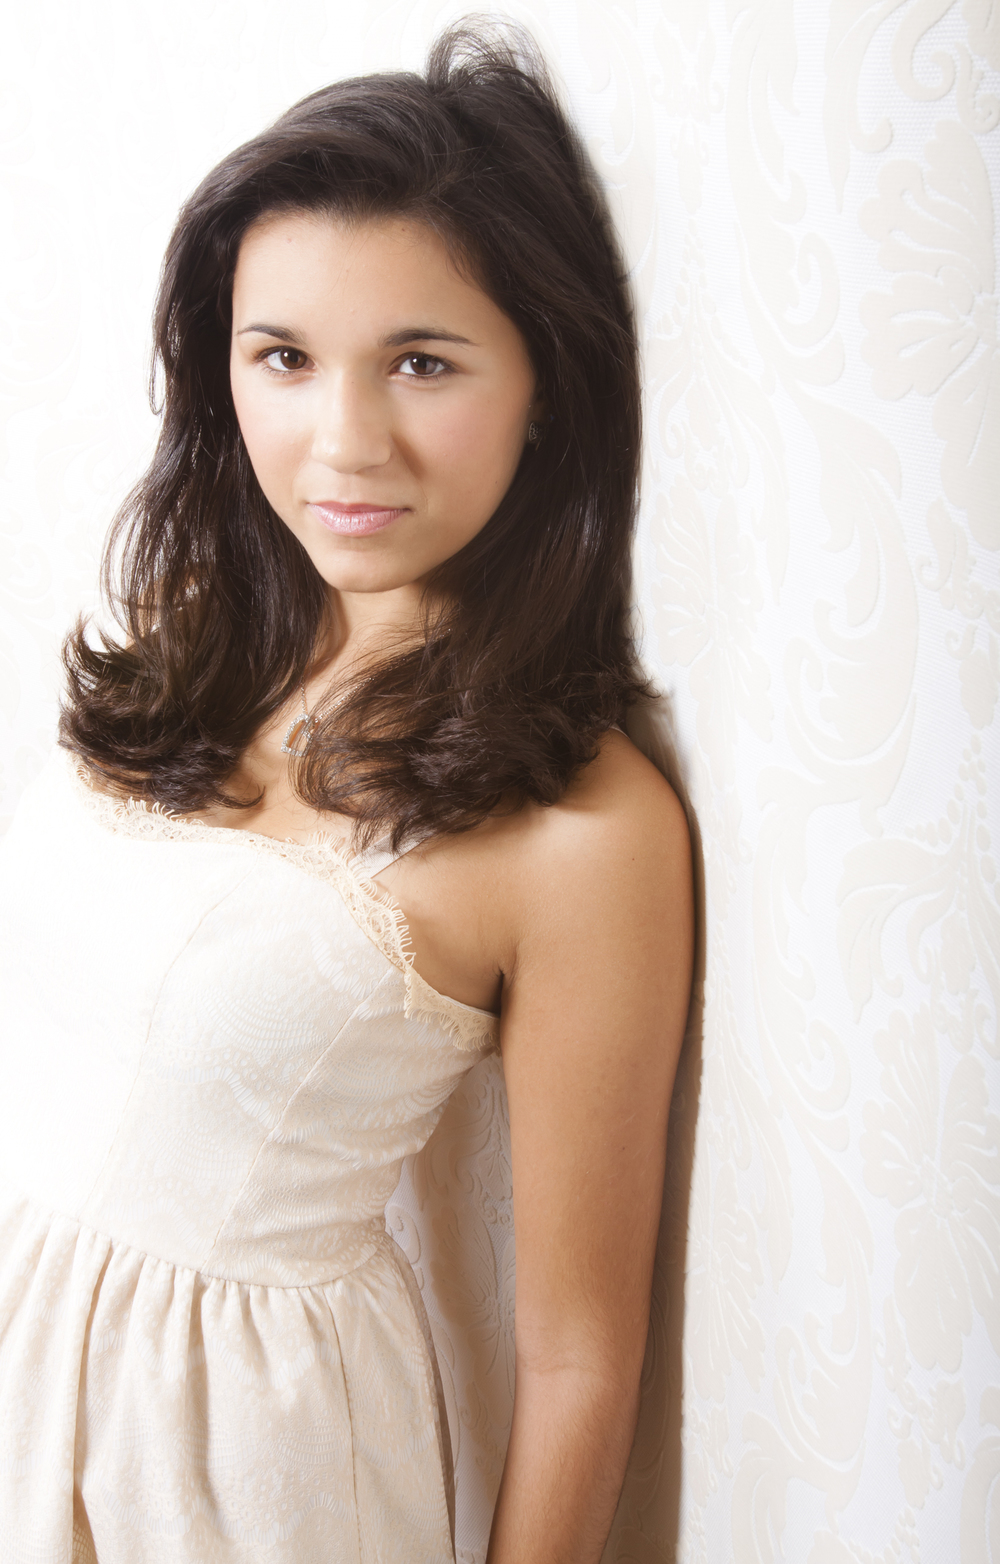 06 modern styled senior portrait sessions in white lace dress leaning on wall 8546.jpg